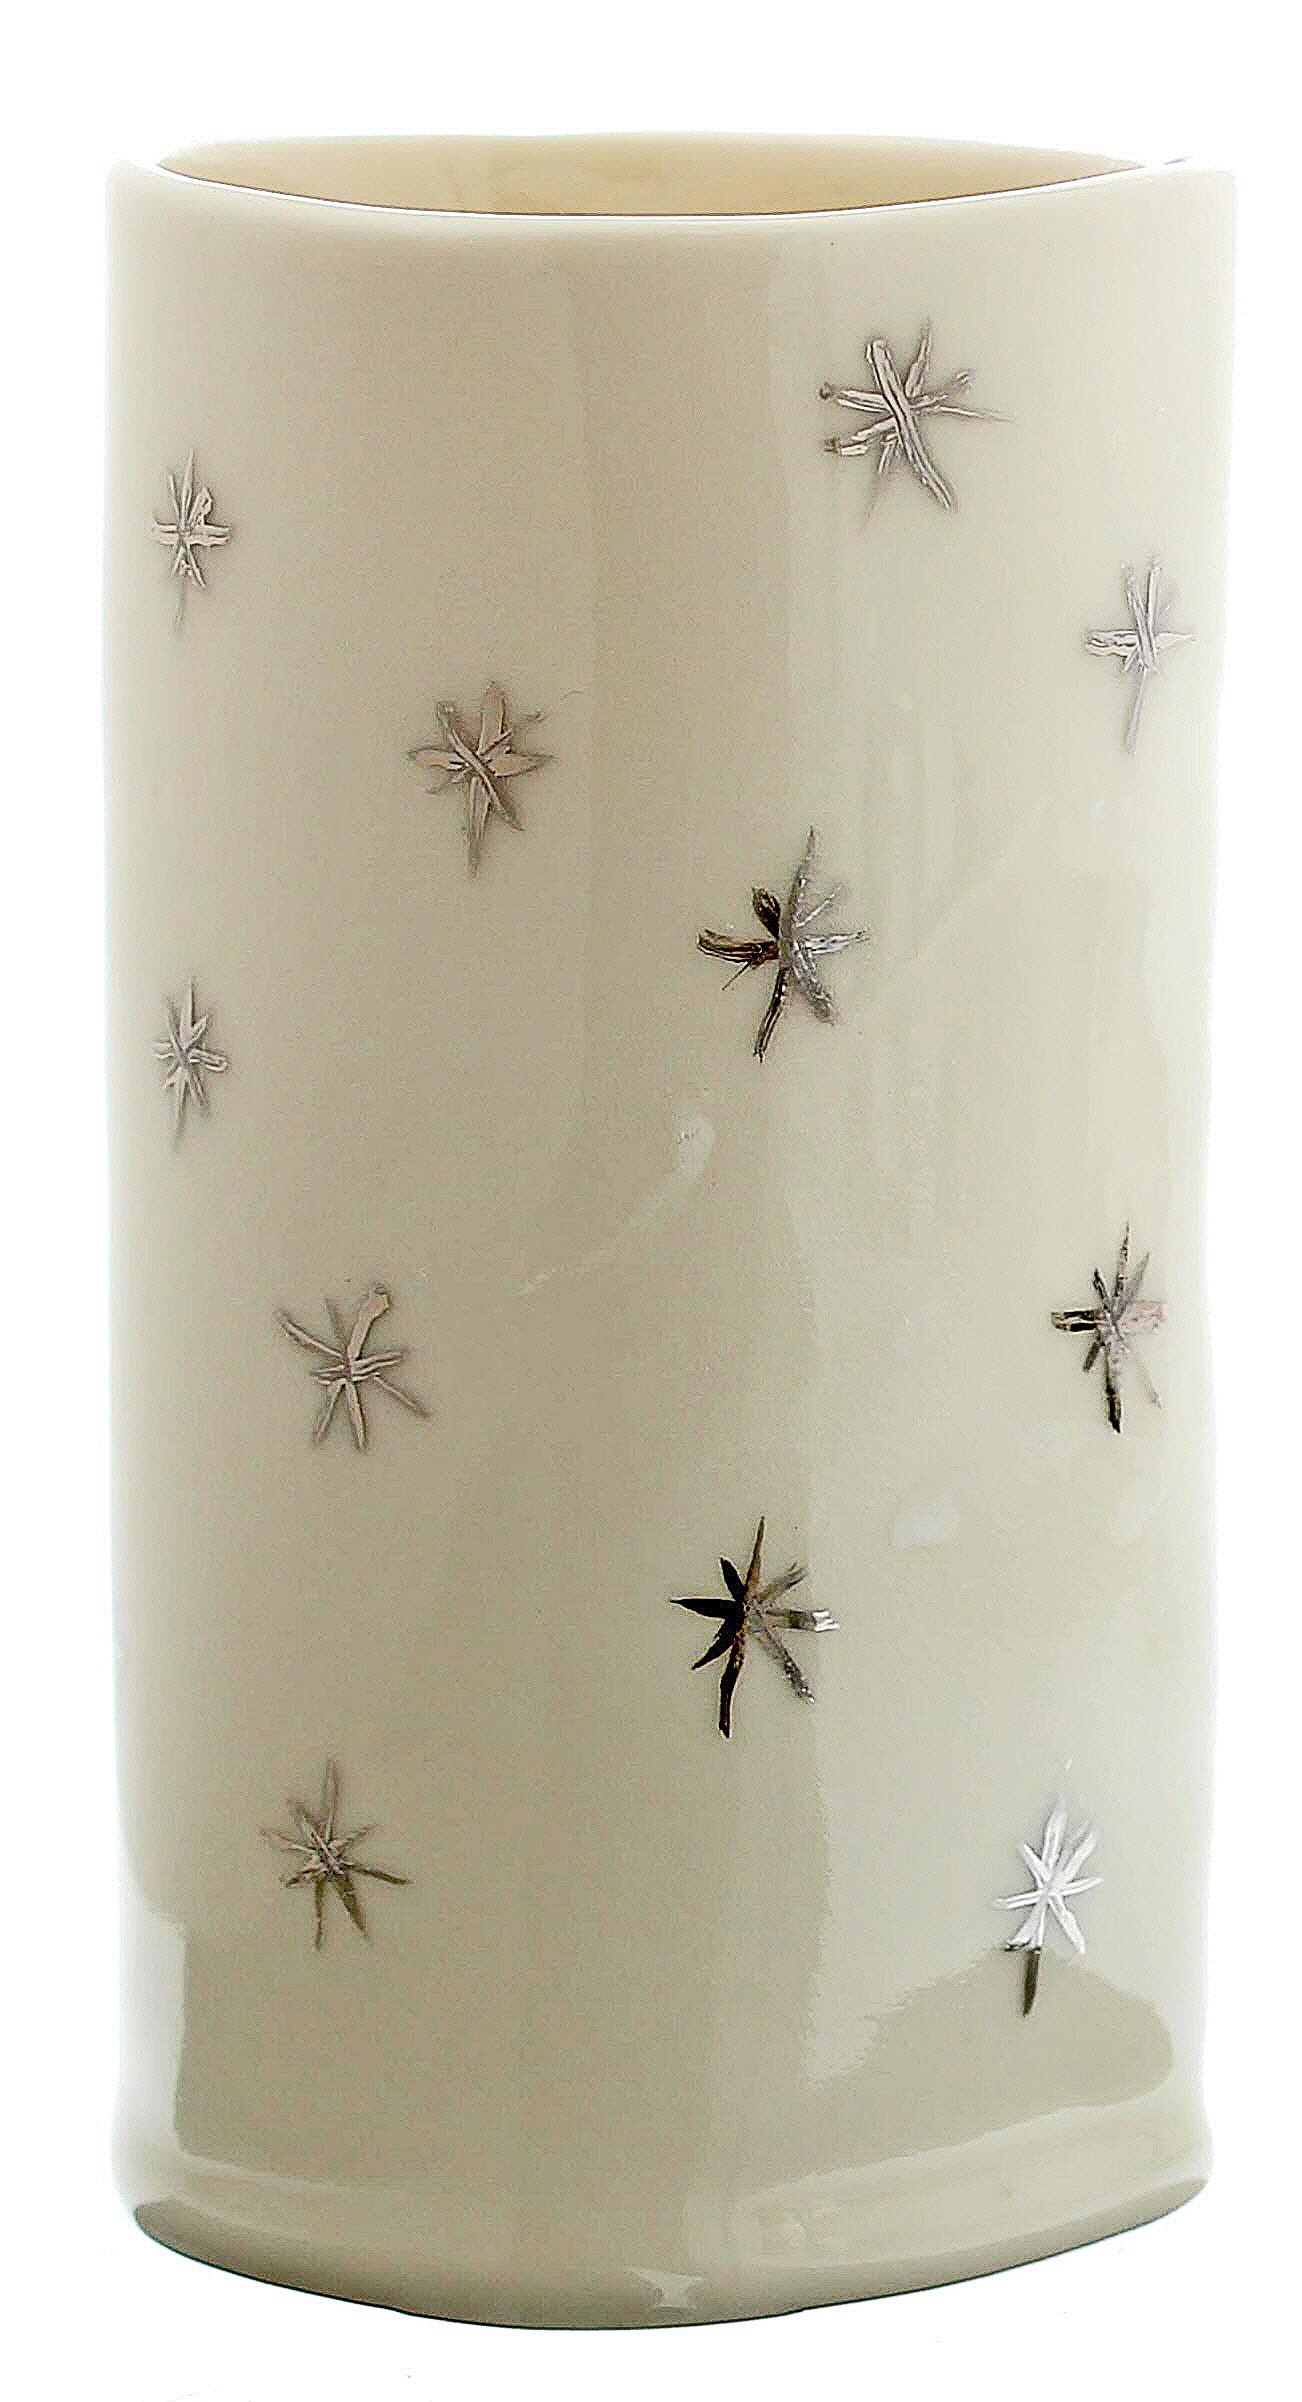 Handmade White and Silver Porcelain Diana Vase